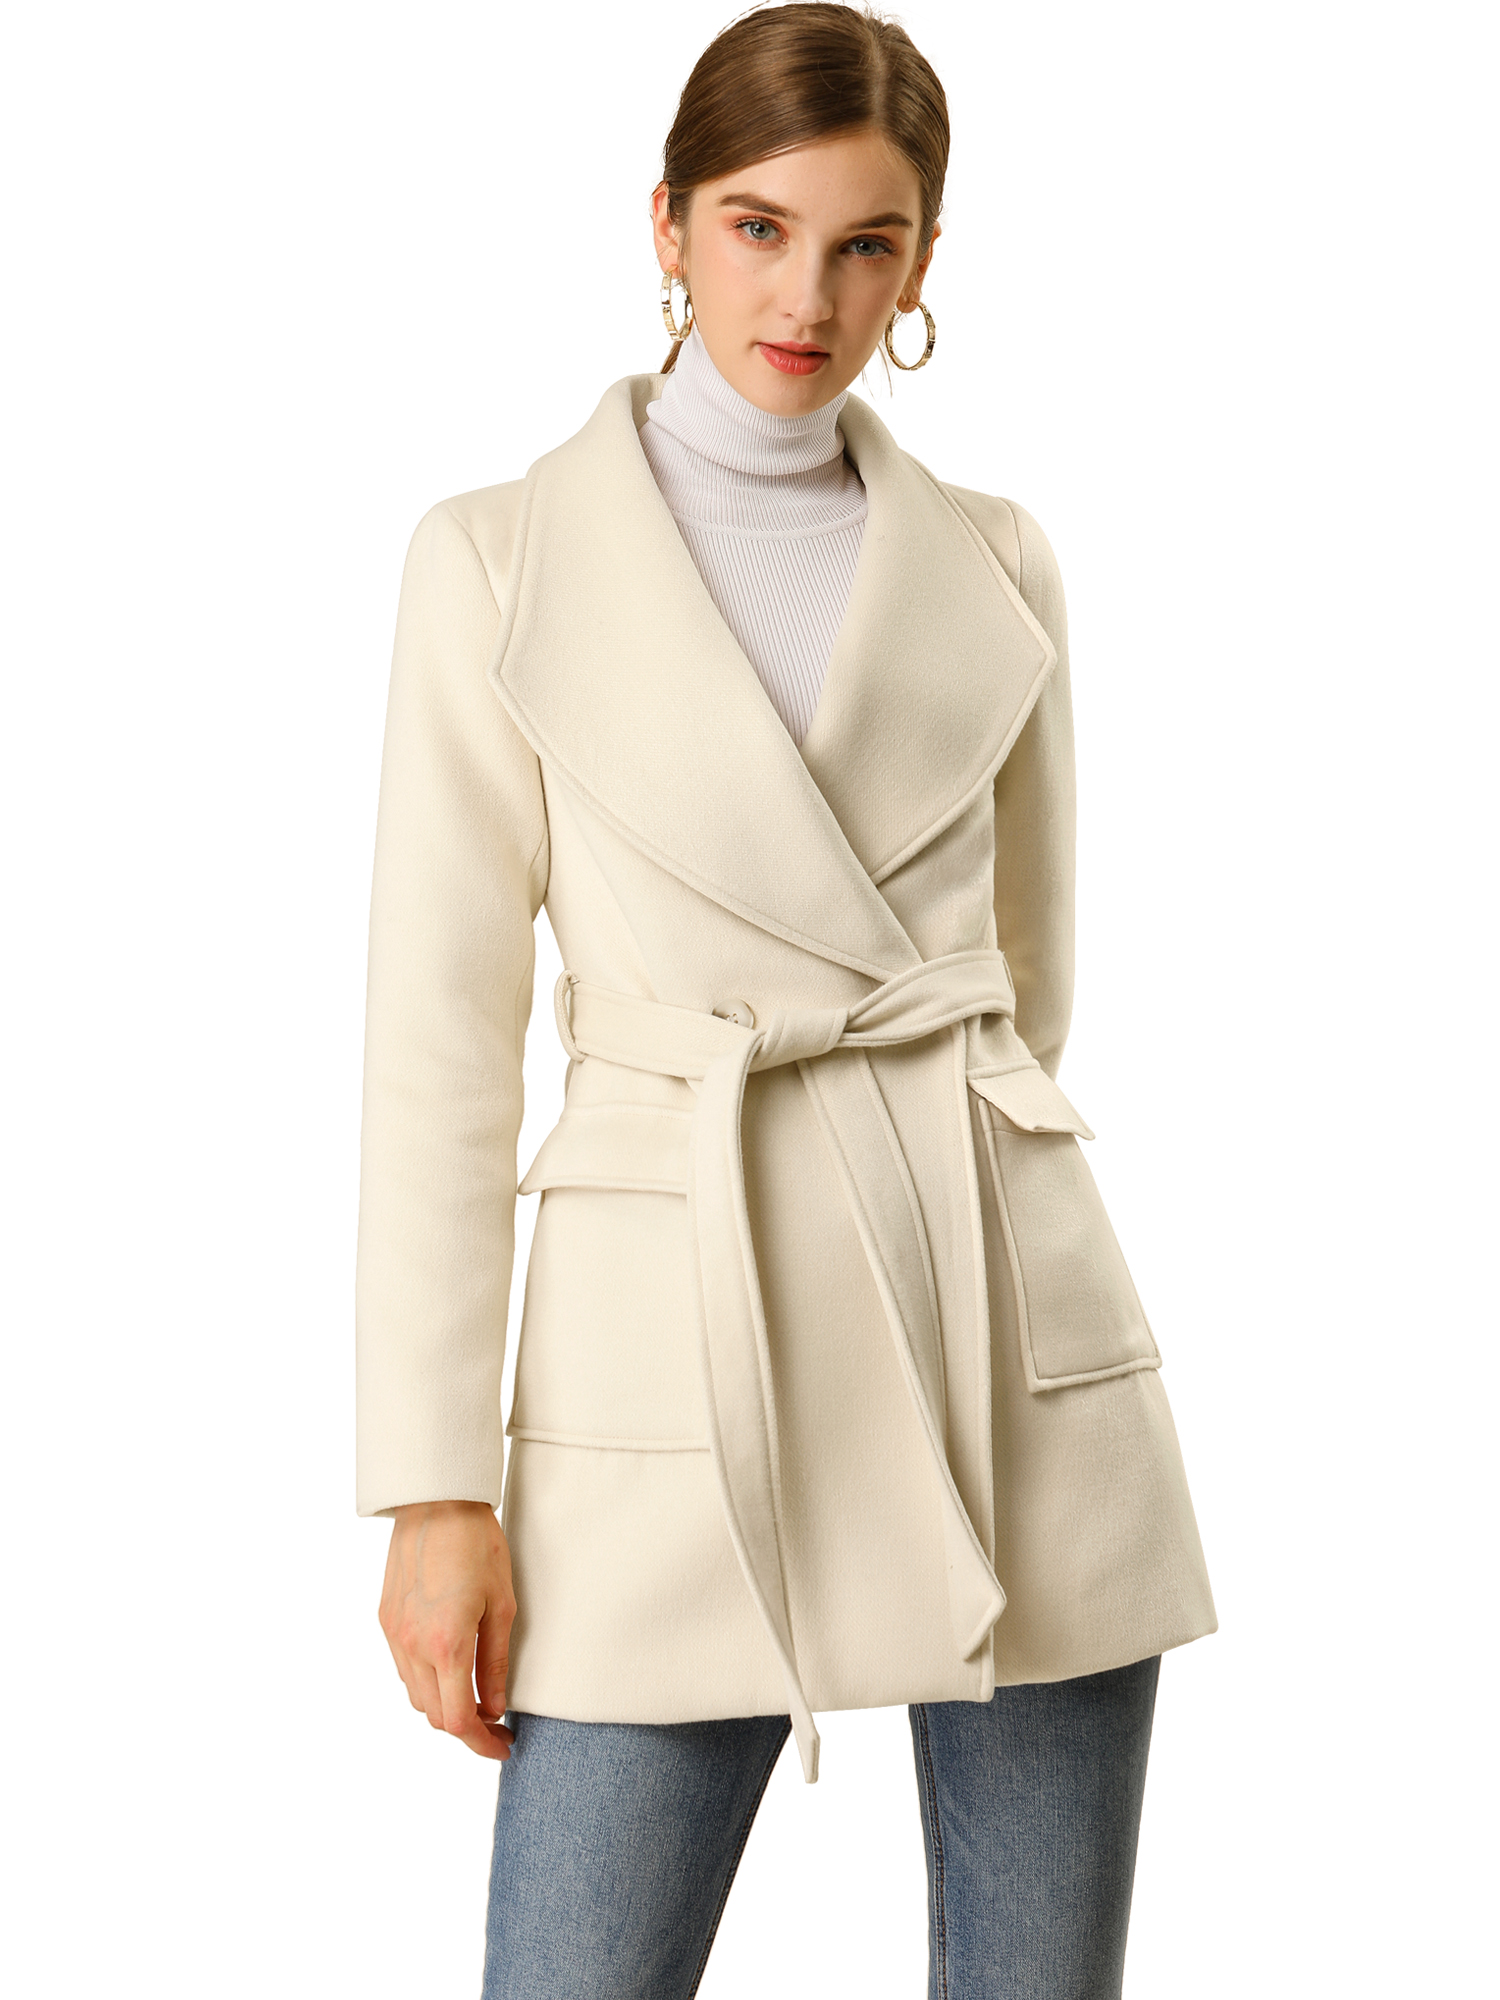 Allegra K Women's Shawl Collar Lapel Belted Coat with Pockets Apricot XL